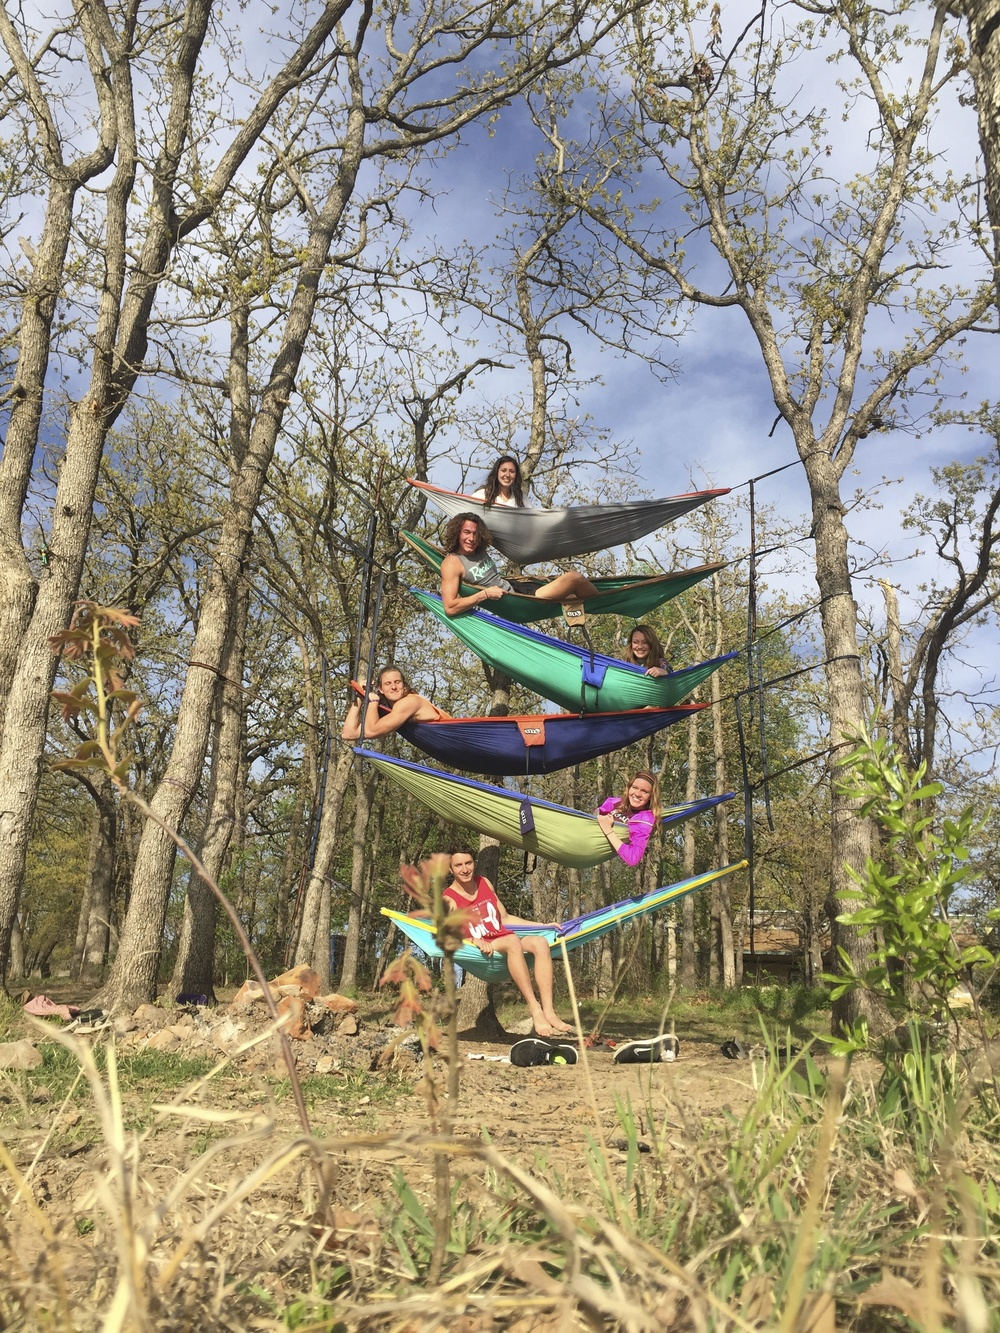 We had an evening of paddle boarding and hammocking at McMurtry! The boys get all of the credit for the hammocks stacked that high.